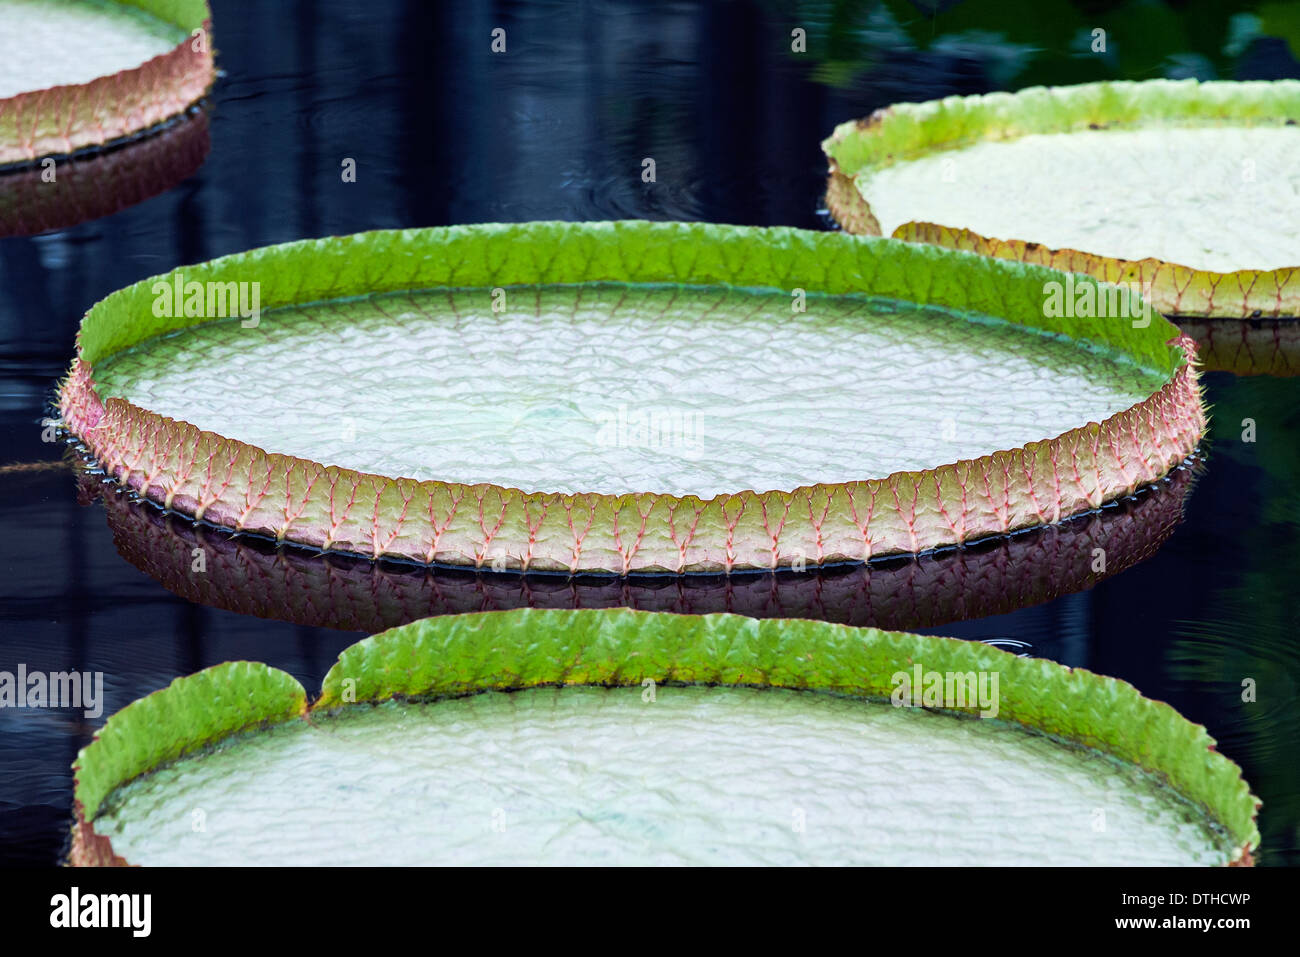 Giant Water Lilly Pad - Stock Image